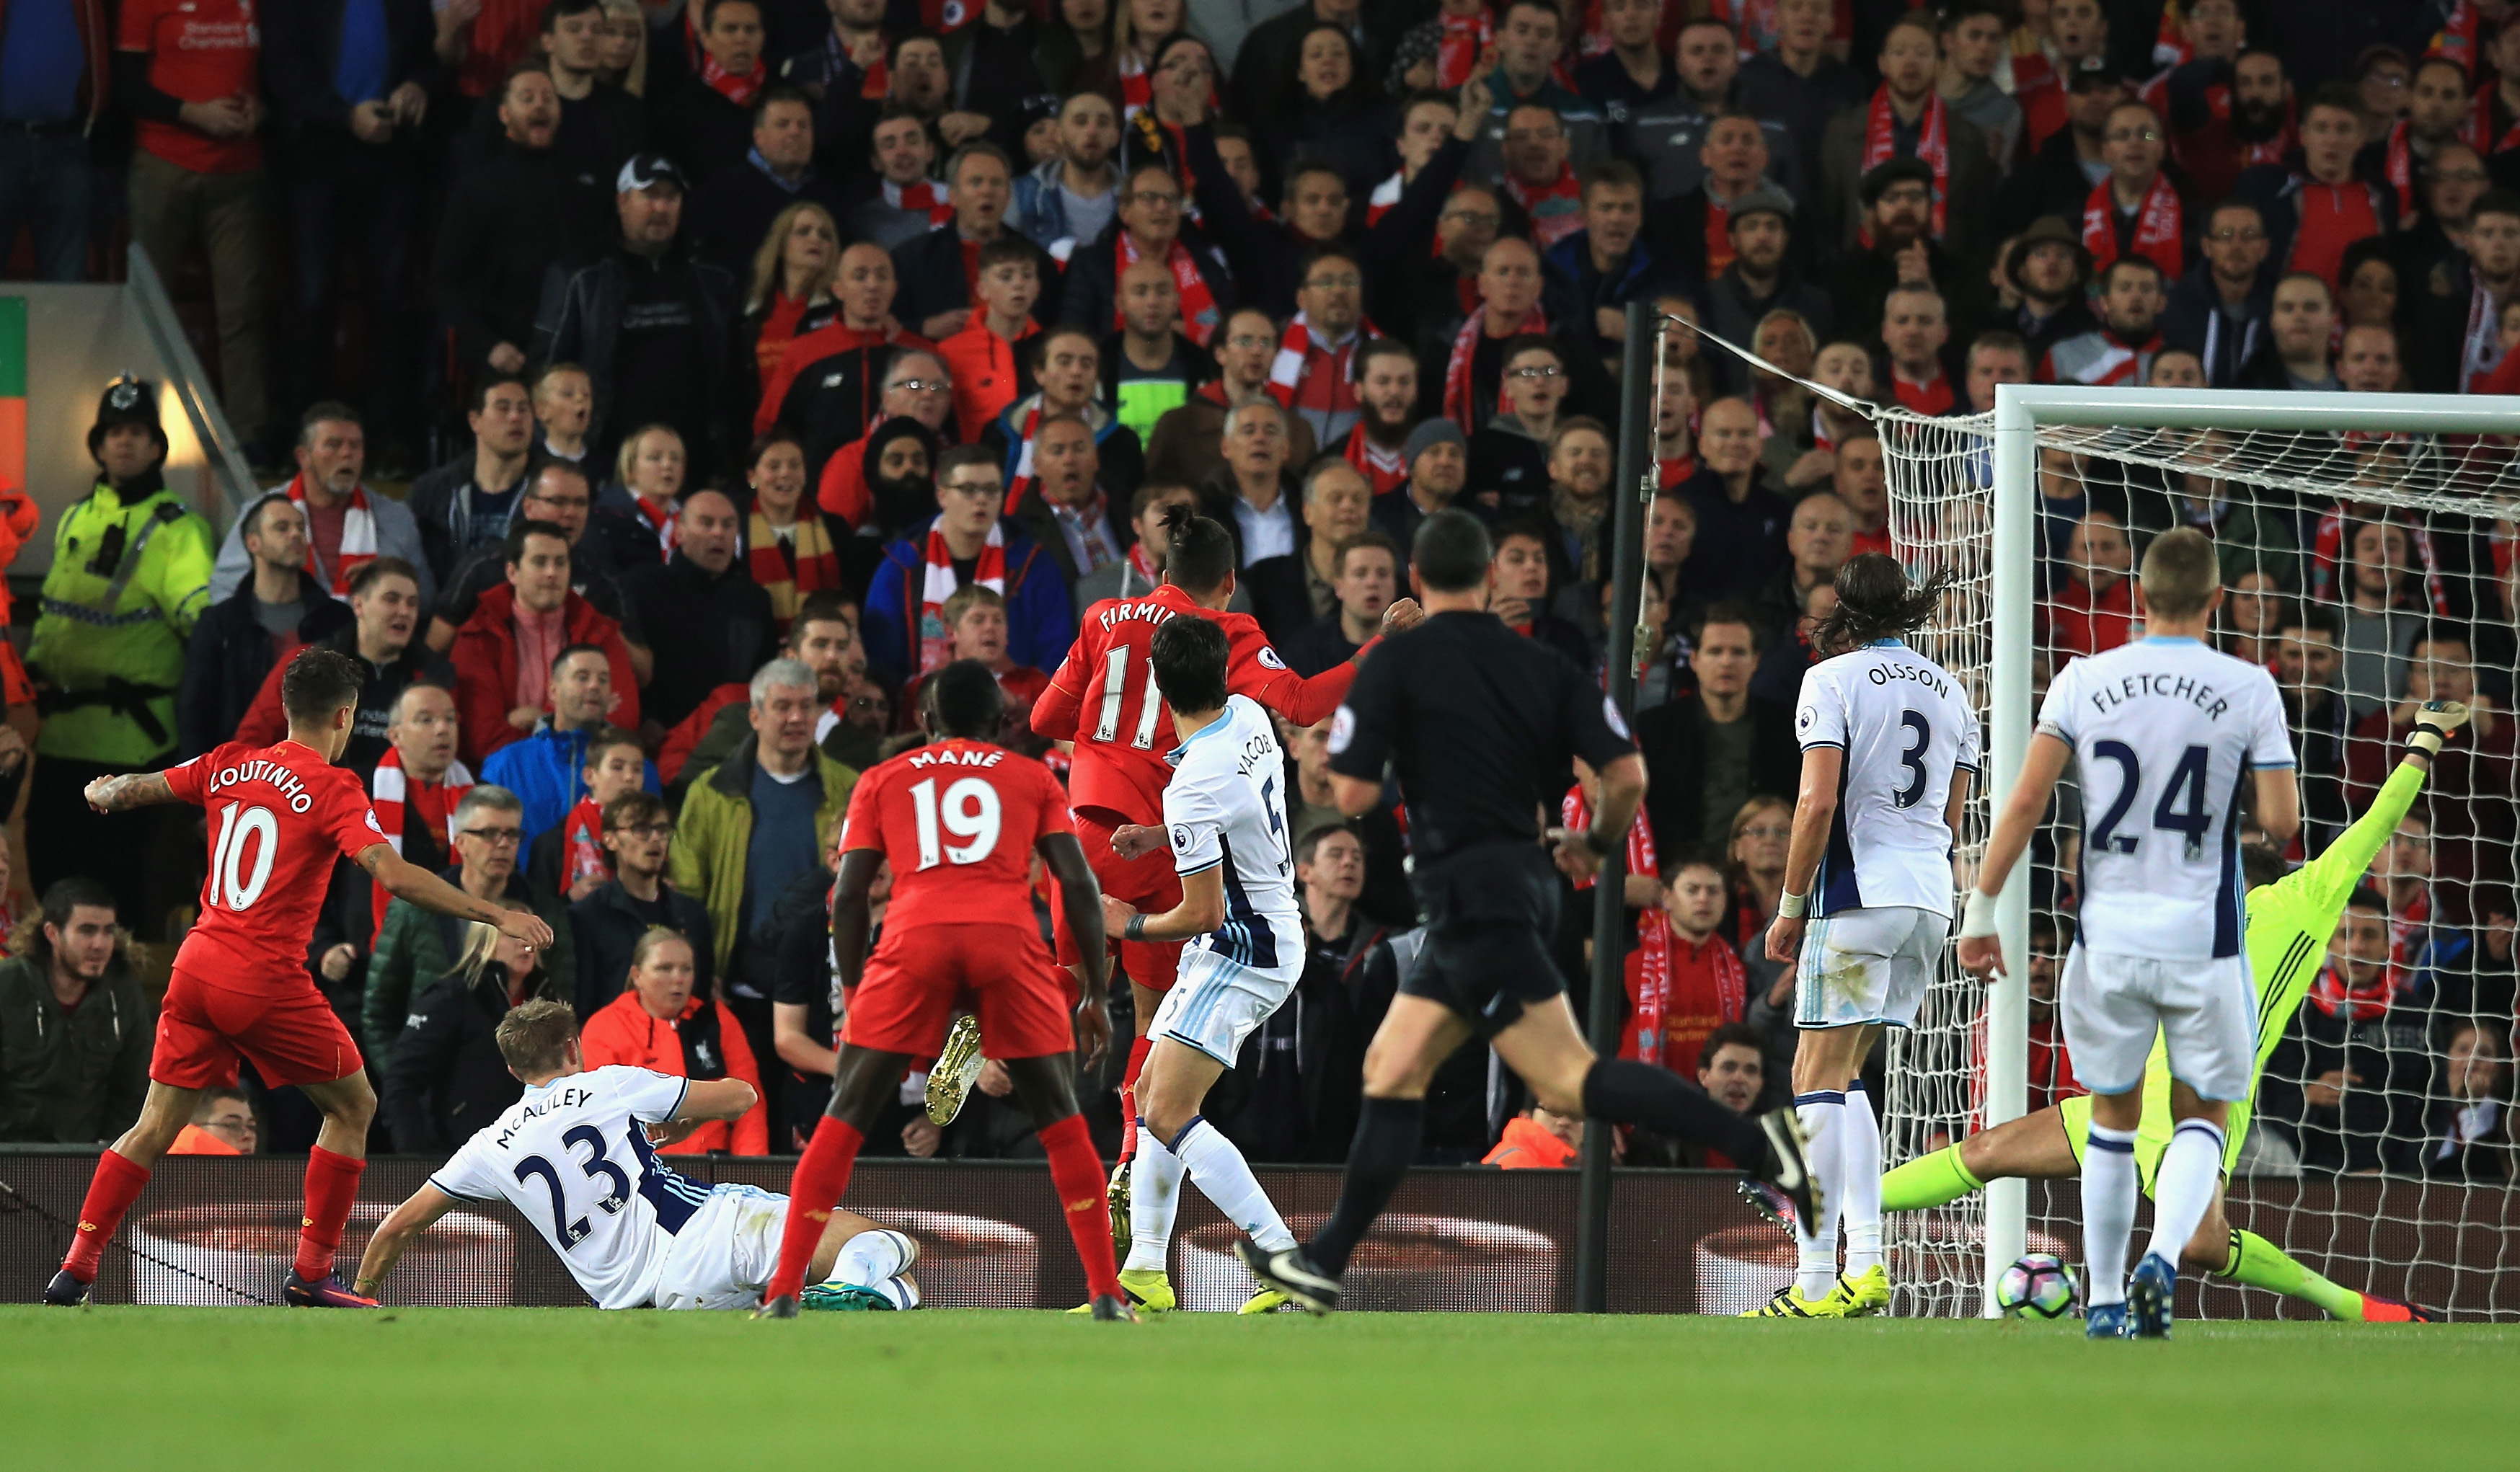 LIVERPOOL, ENGLAND - OCTOBER 22: Philippe Coutinho of Liverpool scores his sides second goal  during the Premier League match between Liverpool and West Bromwich Albion at Anfield on October 22, 2016 in Liverpool, England.  (Photo by Jan Kruger/Getty Images)